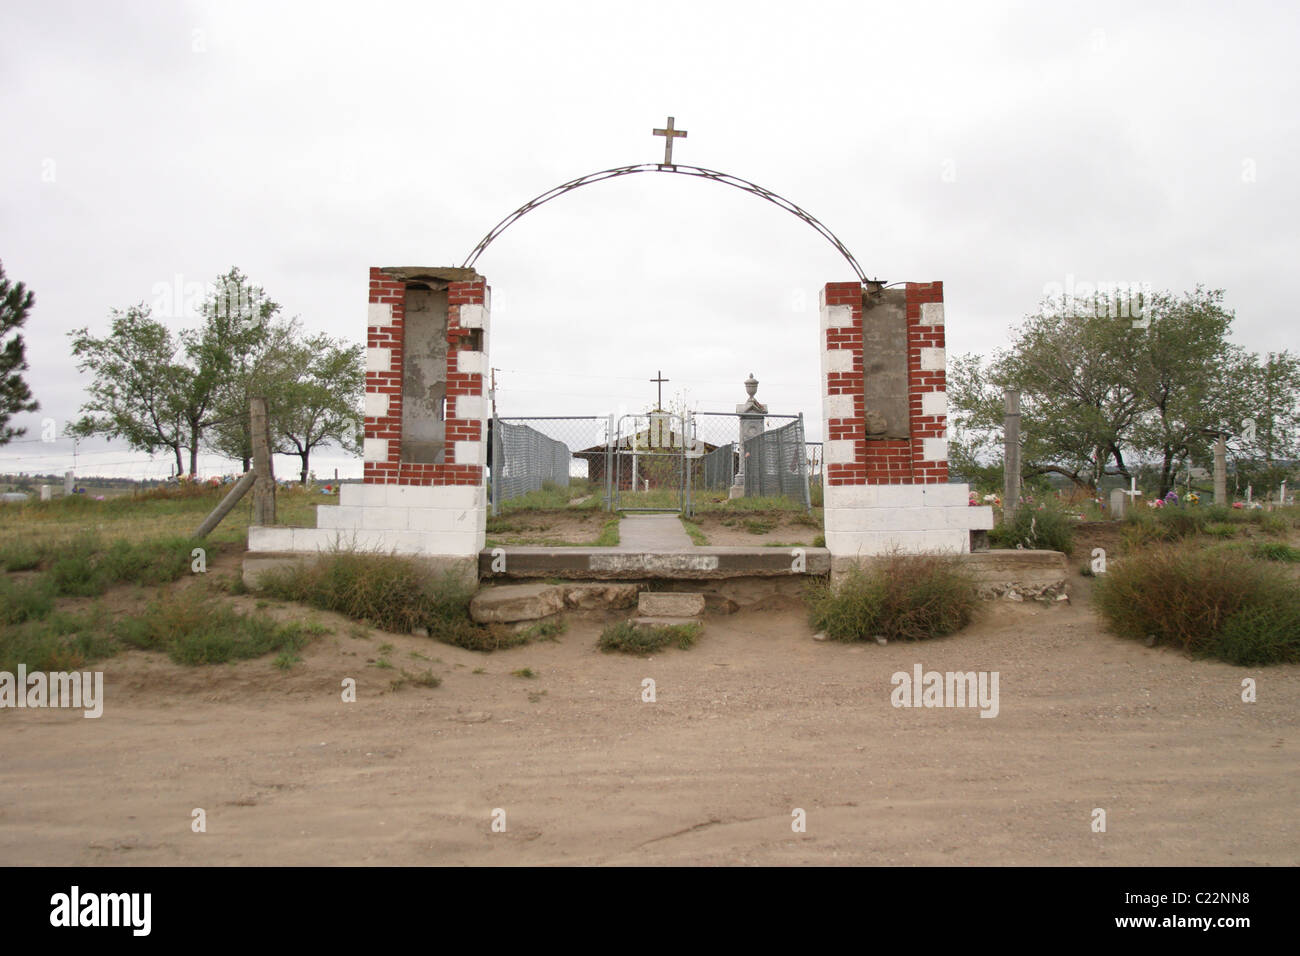 Entrance to the Wounded Knee Memorial. - Stock Image